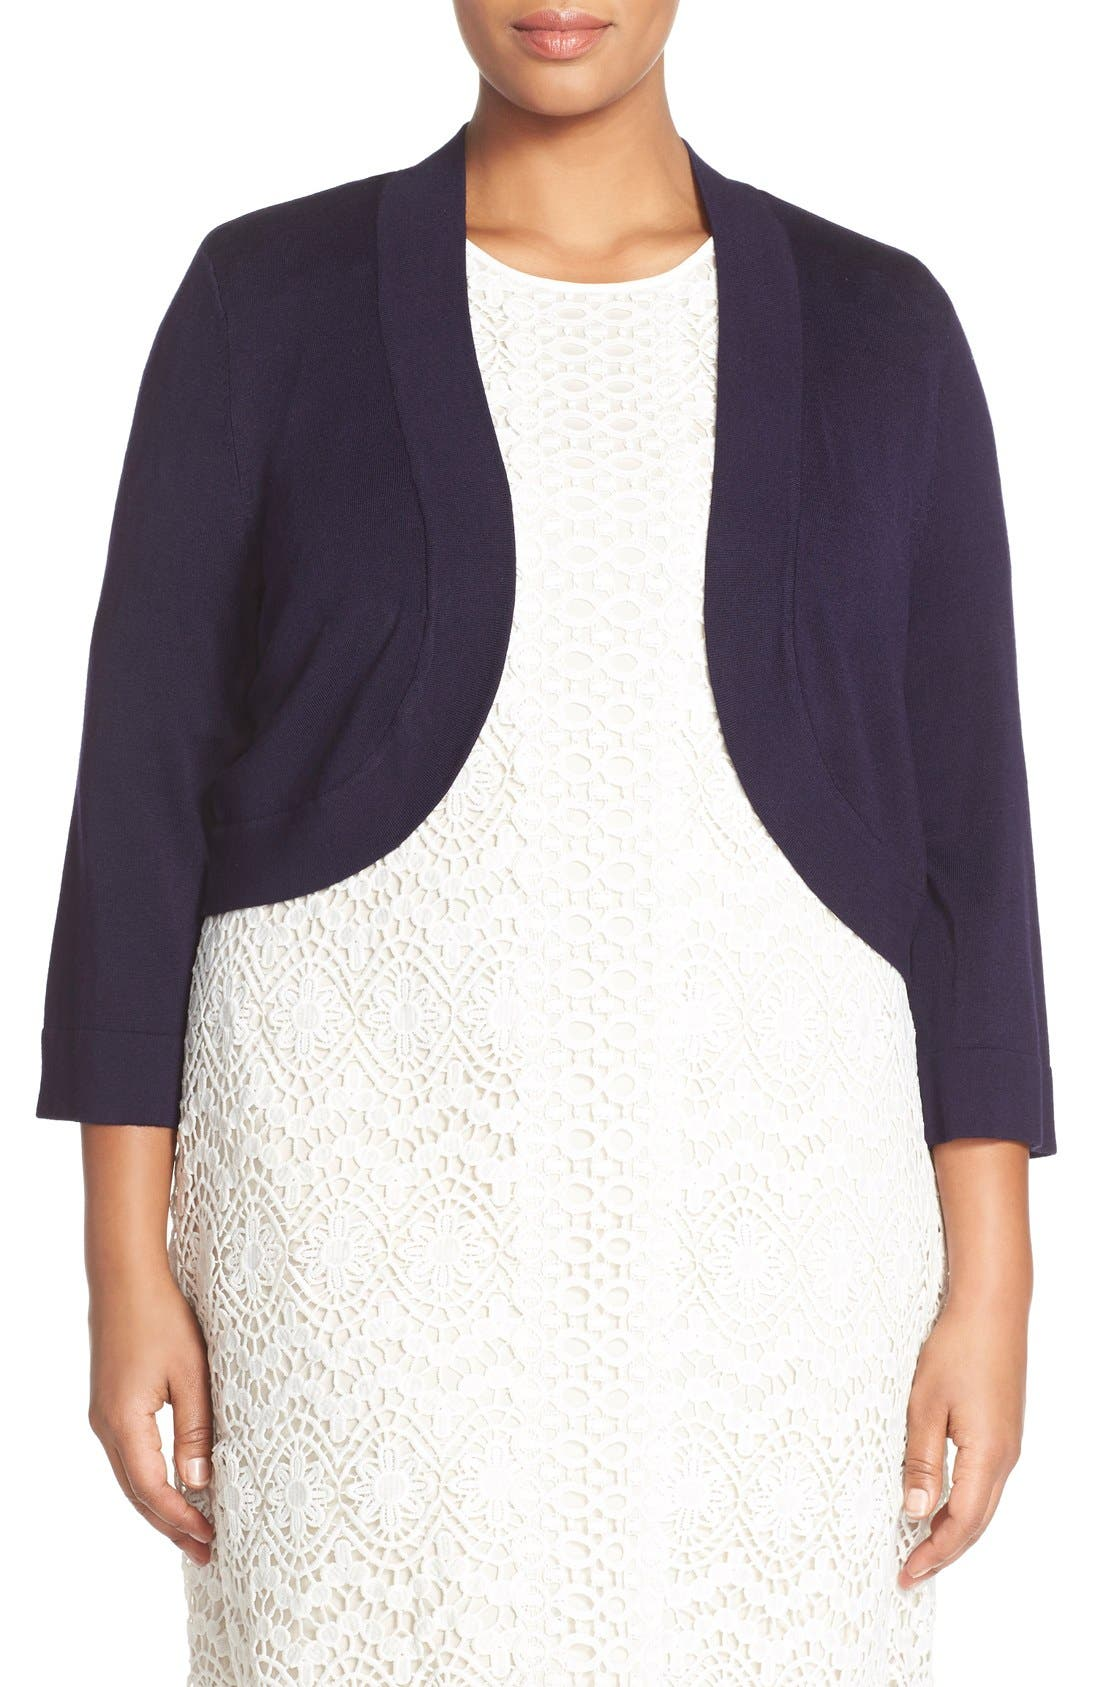 ELIZA J Three Quarter Sleeve Shrug